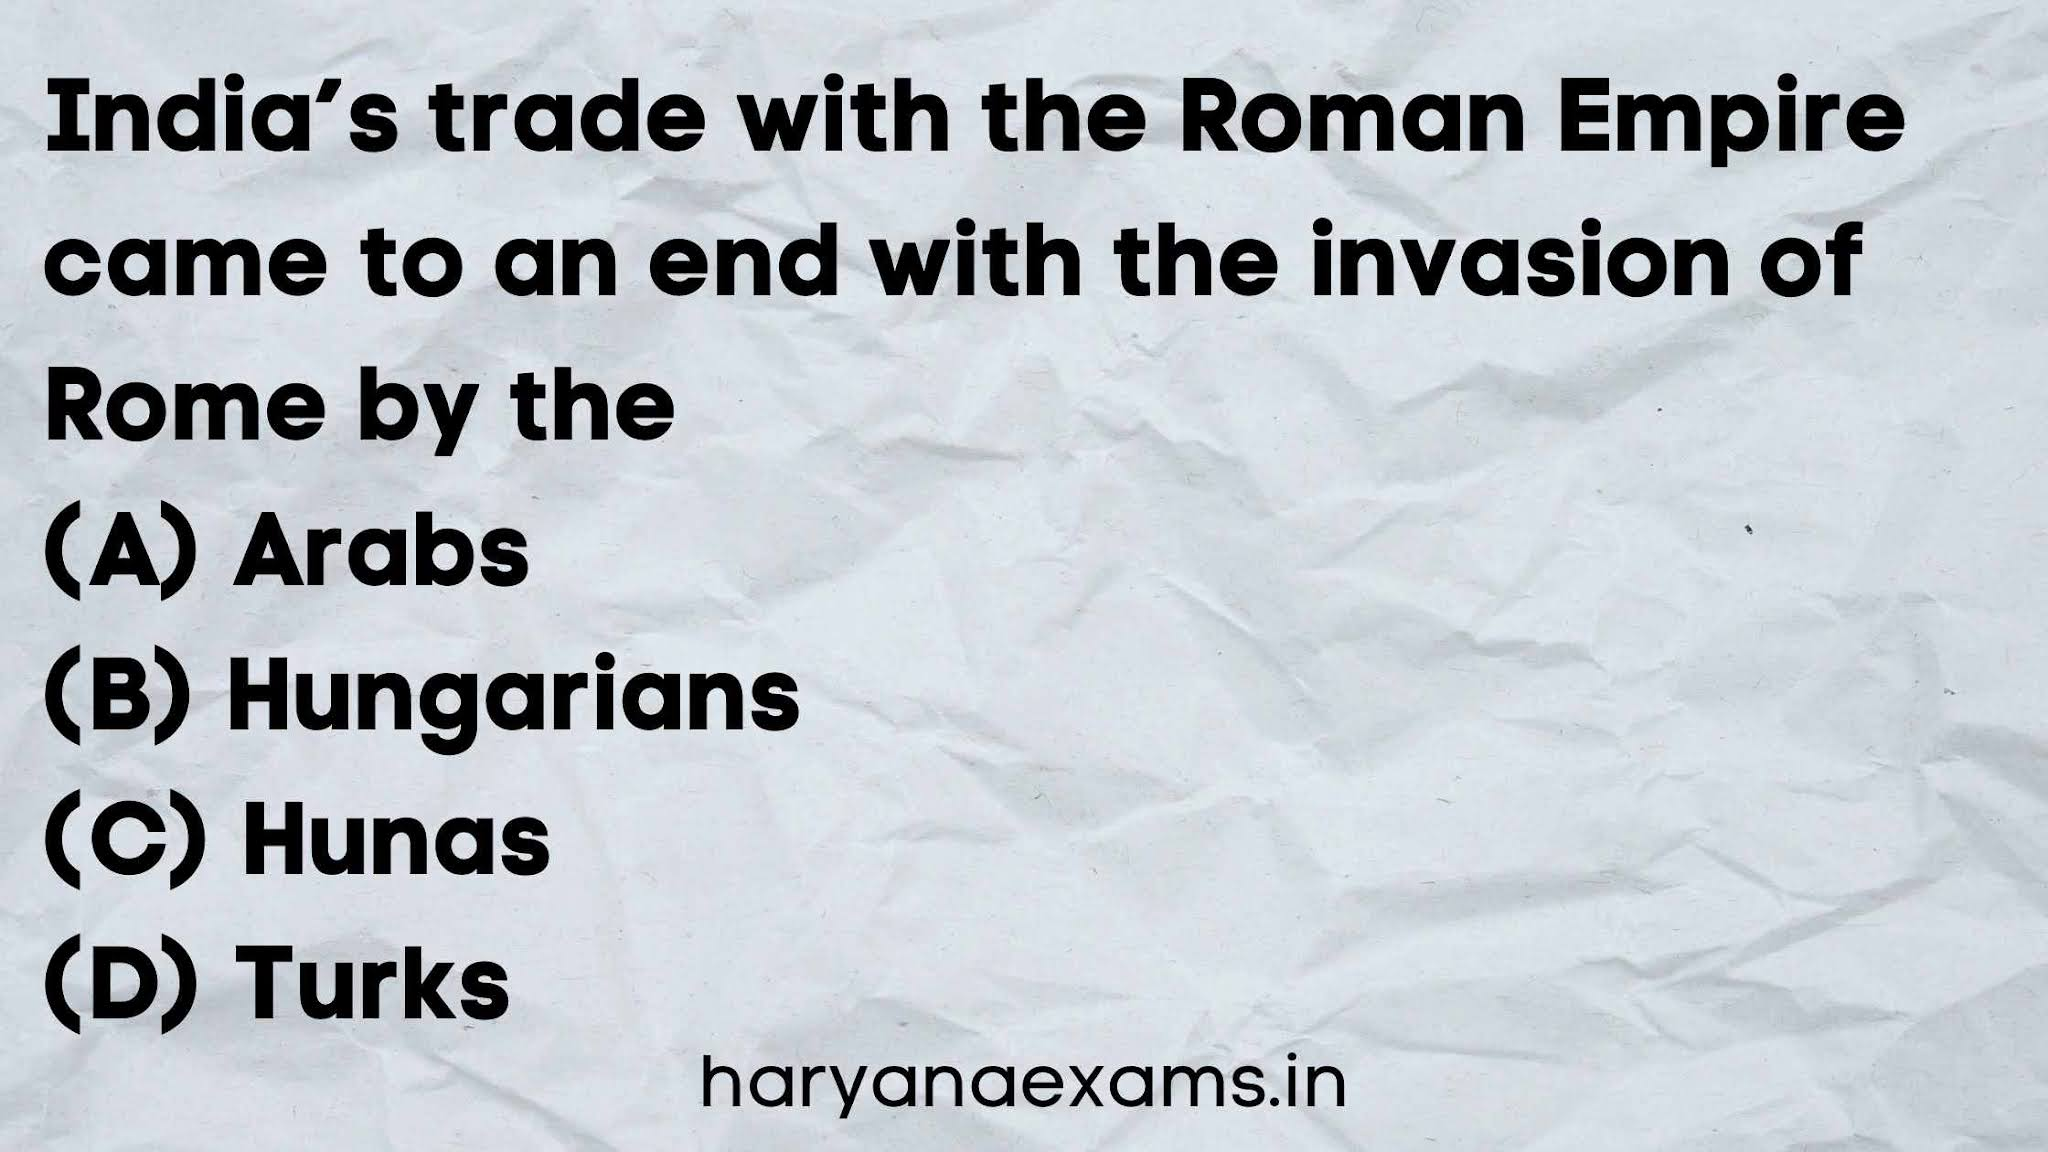 India's trade with the Roman Empire came to an end with the invasion of Rome by the   (A) Arabs   (B) Hungarians   (C) Hunas   (D) Turks